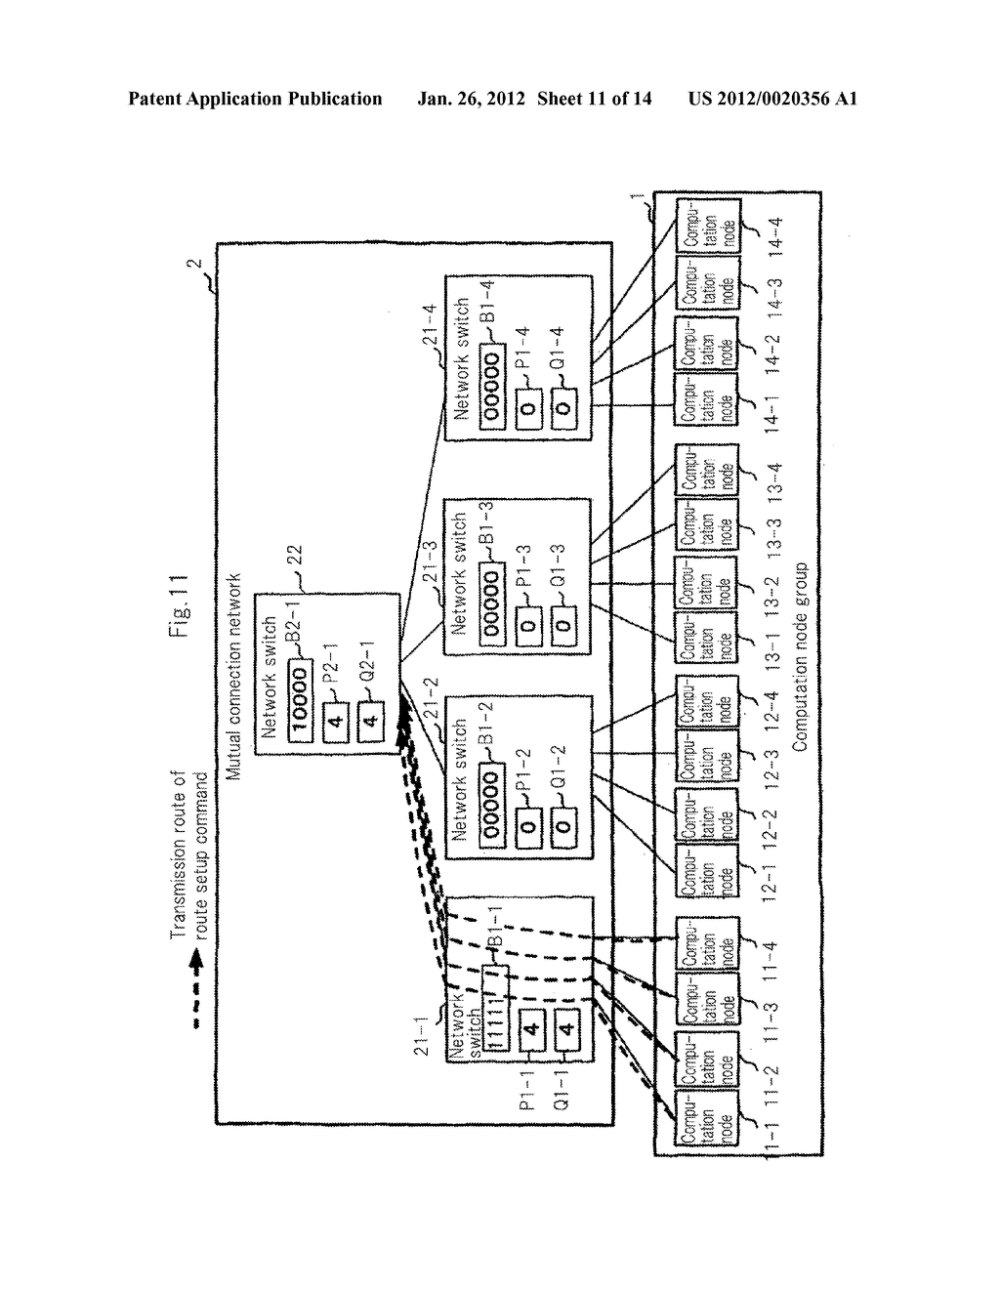 medium resolution of network switch route setup method program and parallel computer system diagram schematic and image 12